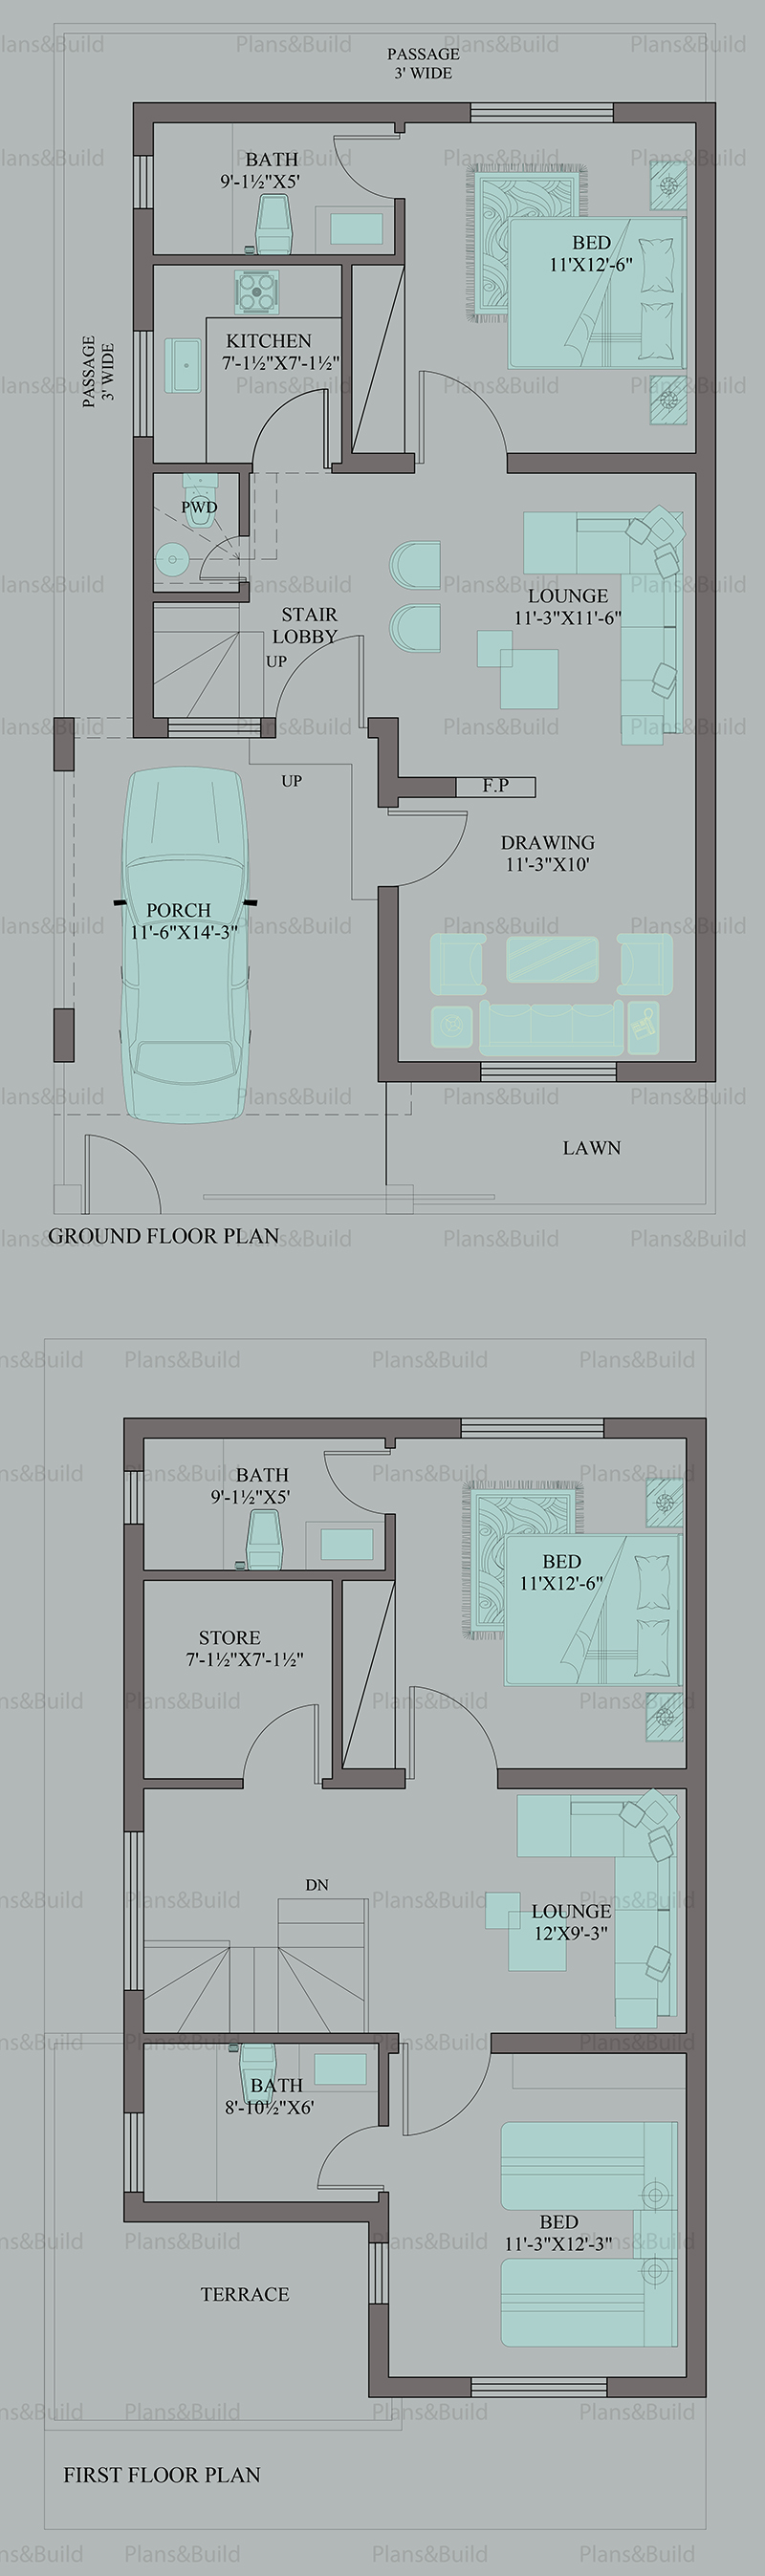 Plans and Build | 5Marla House plans